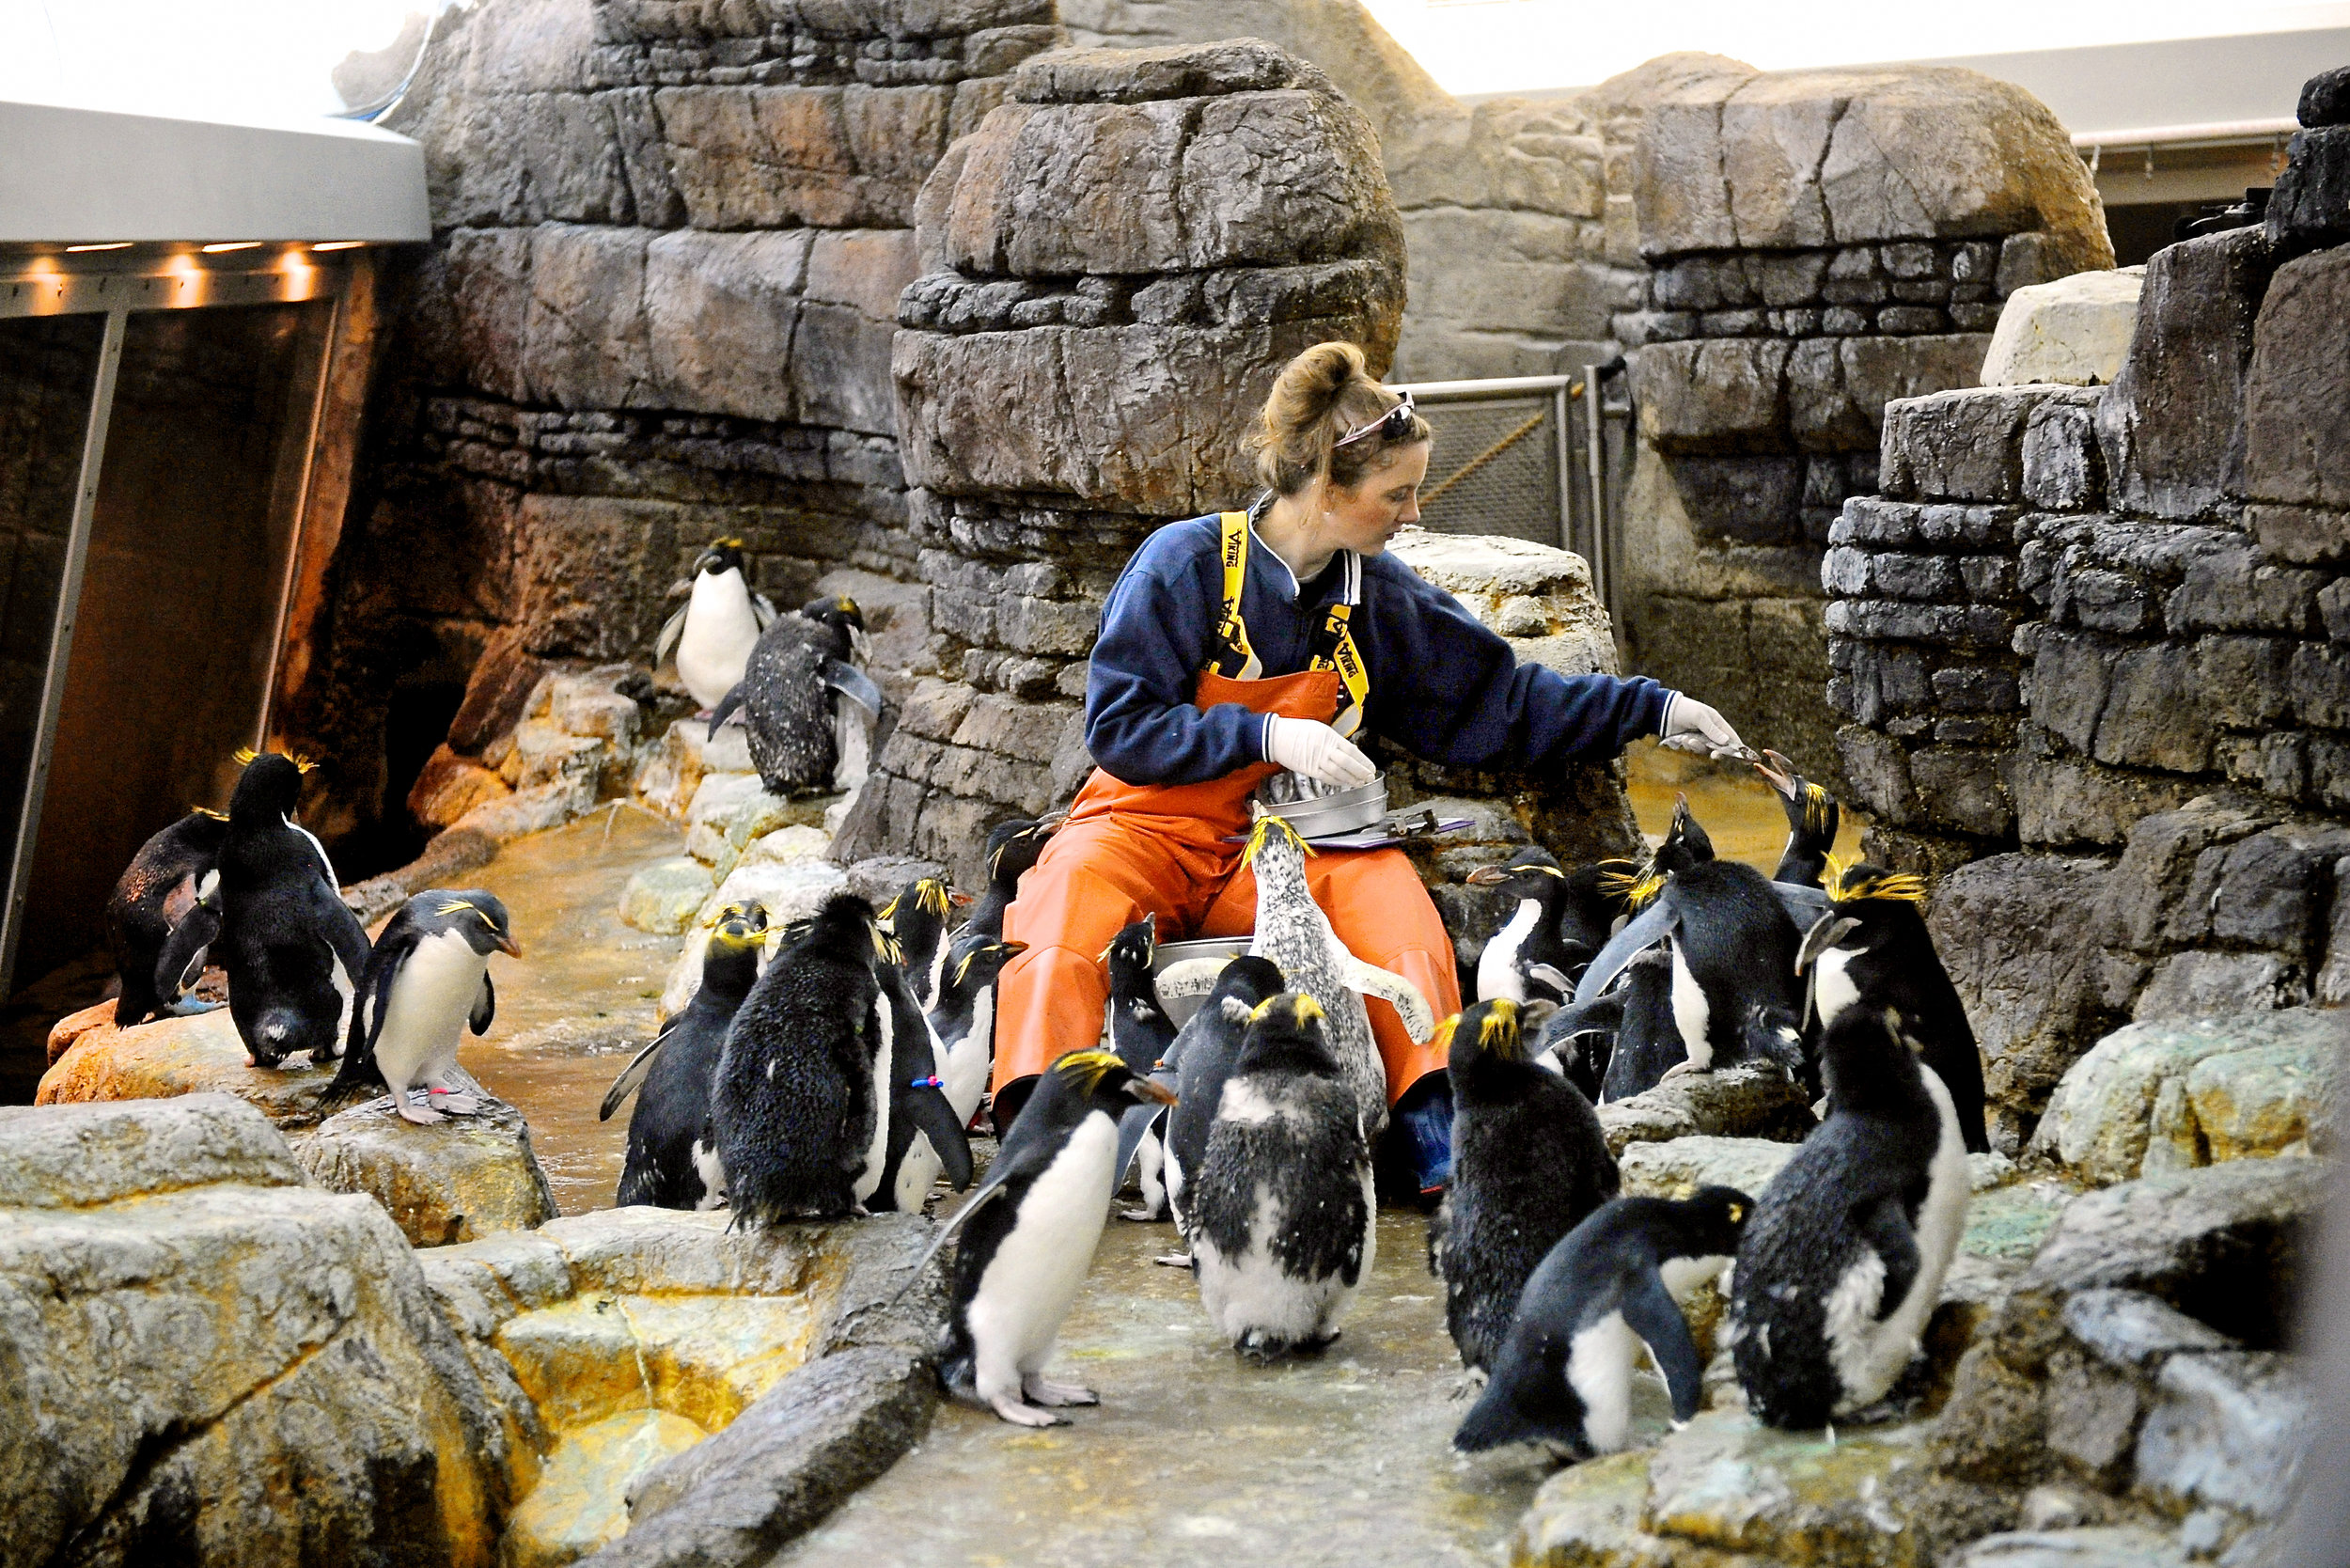 Sara Baer Detroit Zookeeper, feeds penguins, Penguin; detroit; zoo; exhibit; arctic; south; pole; birds; wildlife; photography; photographer; nature; king; yellow; suit; tux, sardine,